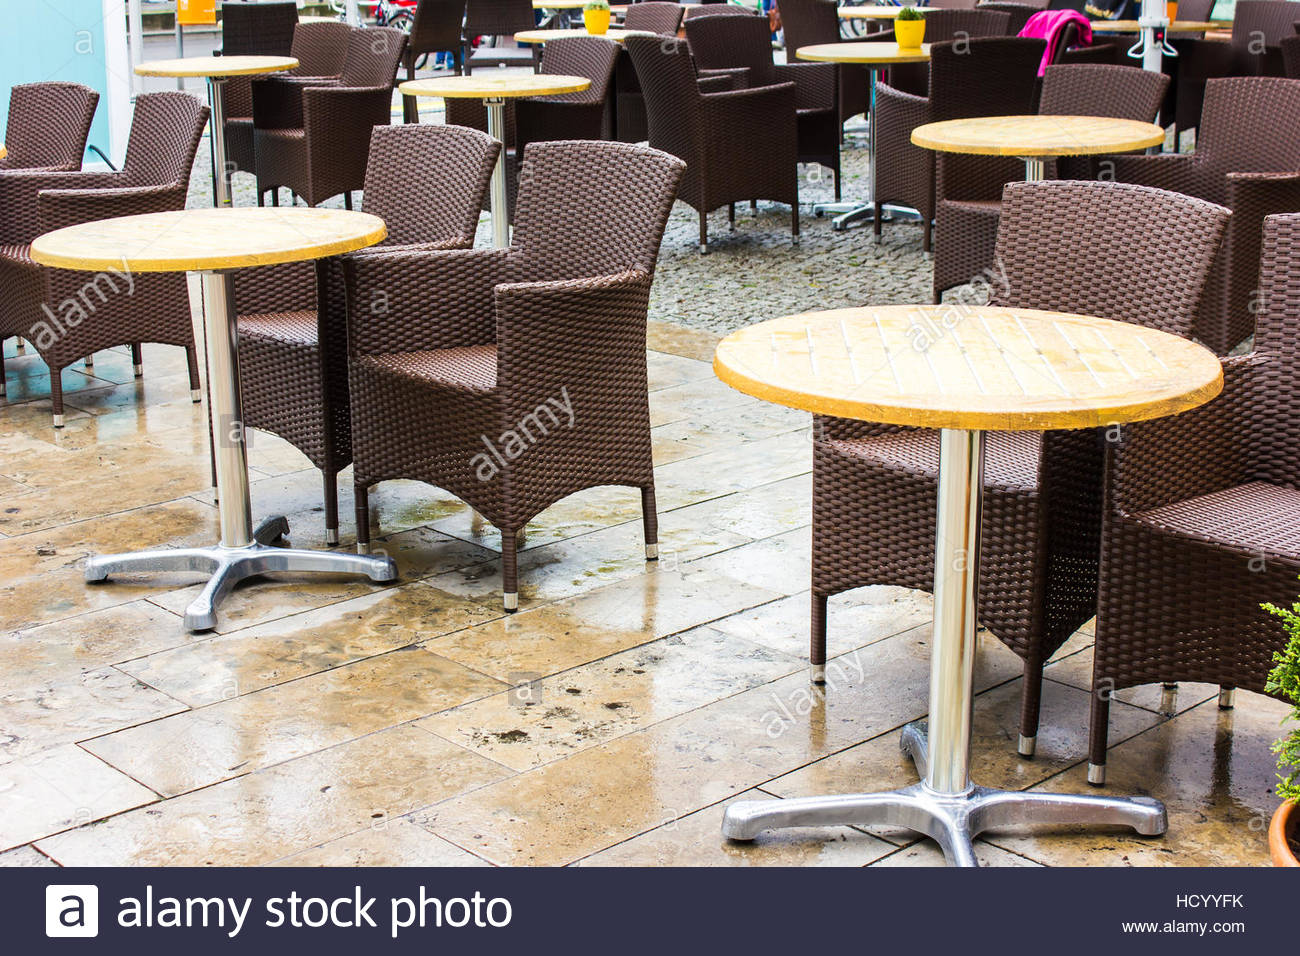 tables outside coffee shop stock photos tables outside coffee shop stock images alamy. Black Bedroom Furniture Sets. Home Design Ideas